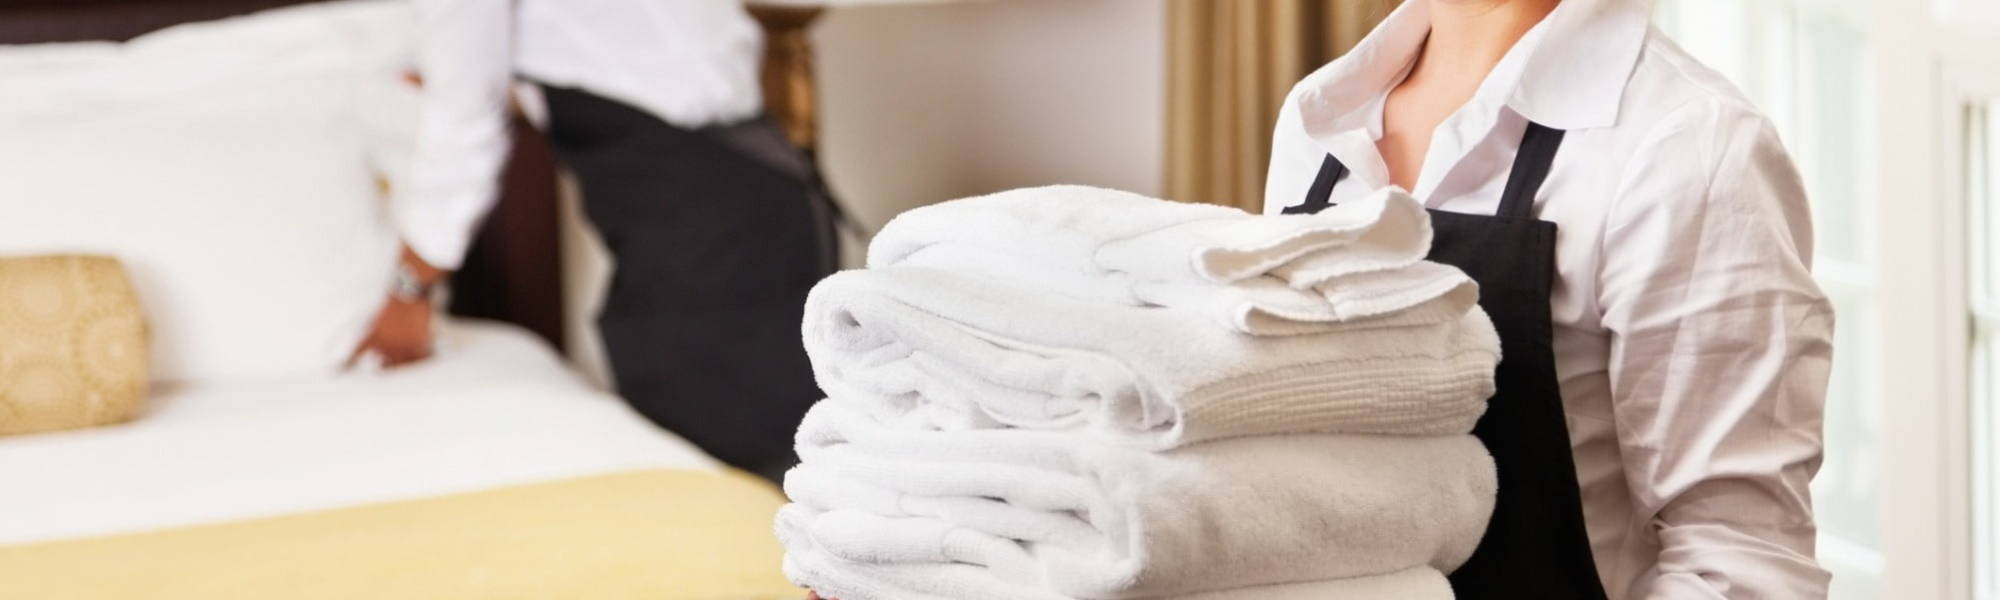 Clean hotel towels